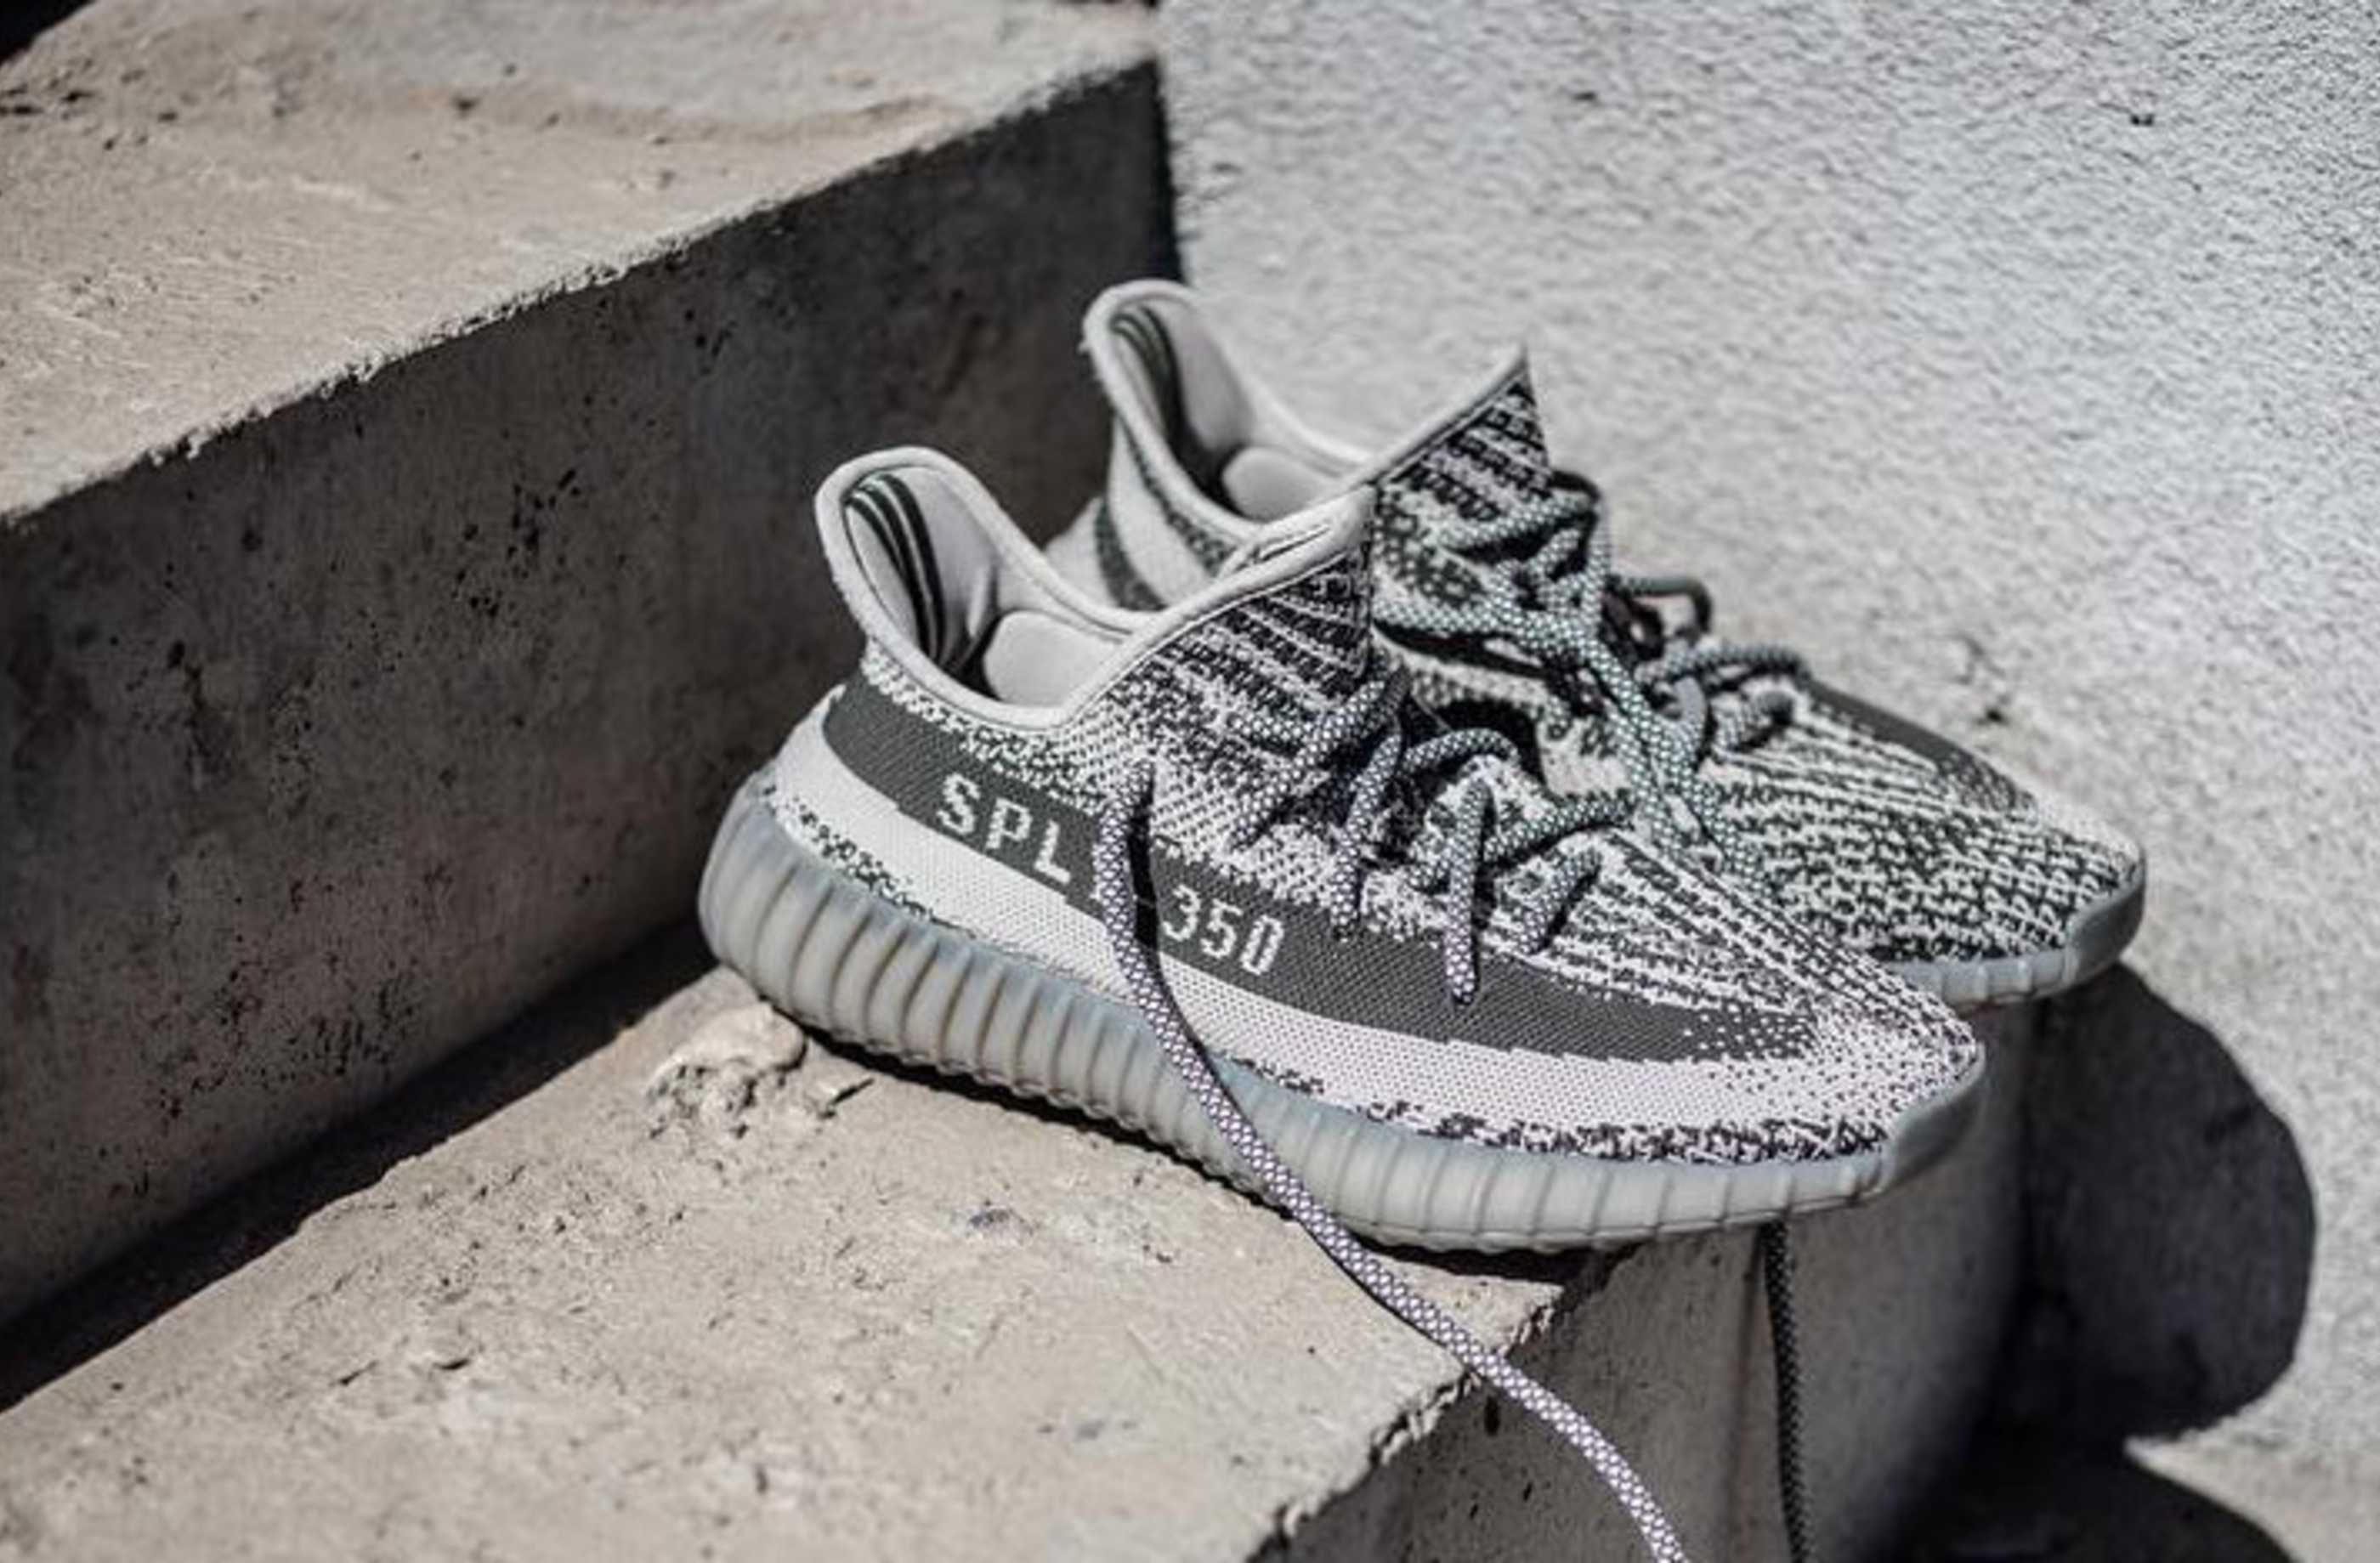 A First Look at the All Grey adidas Yeezy Boost 350 V2